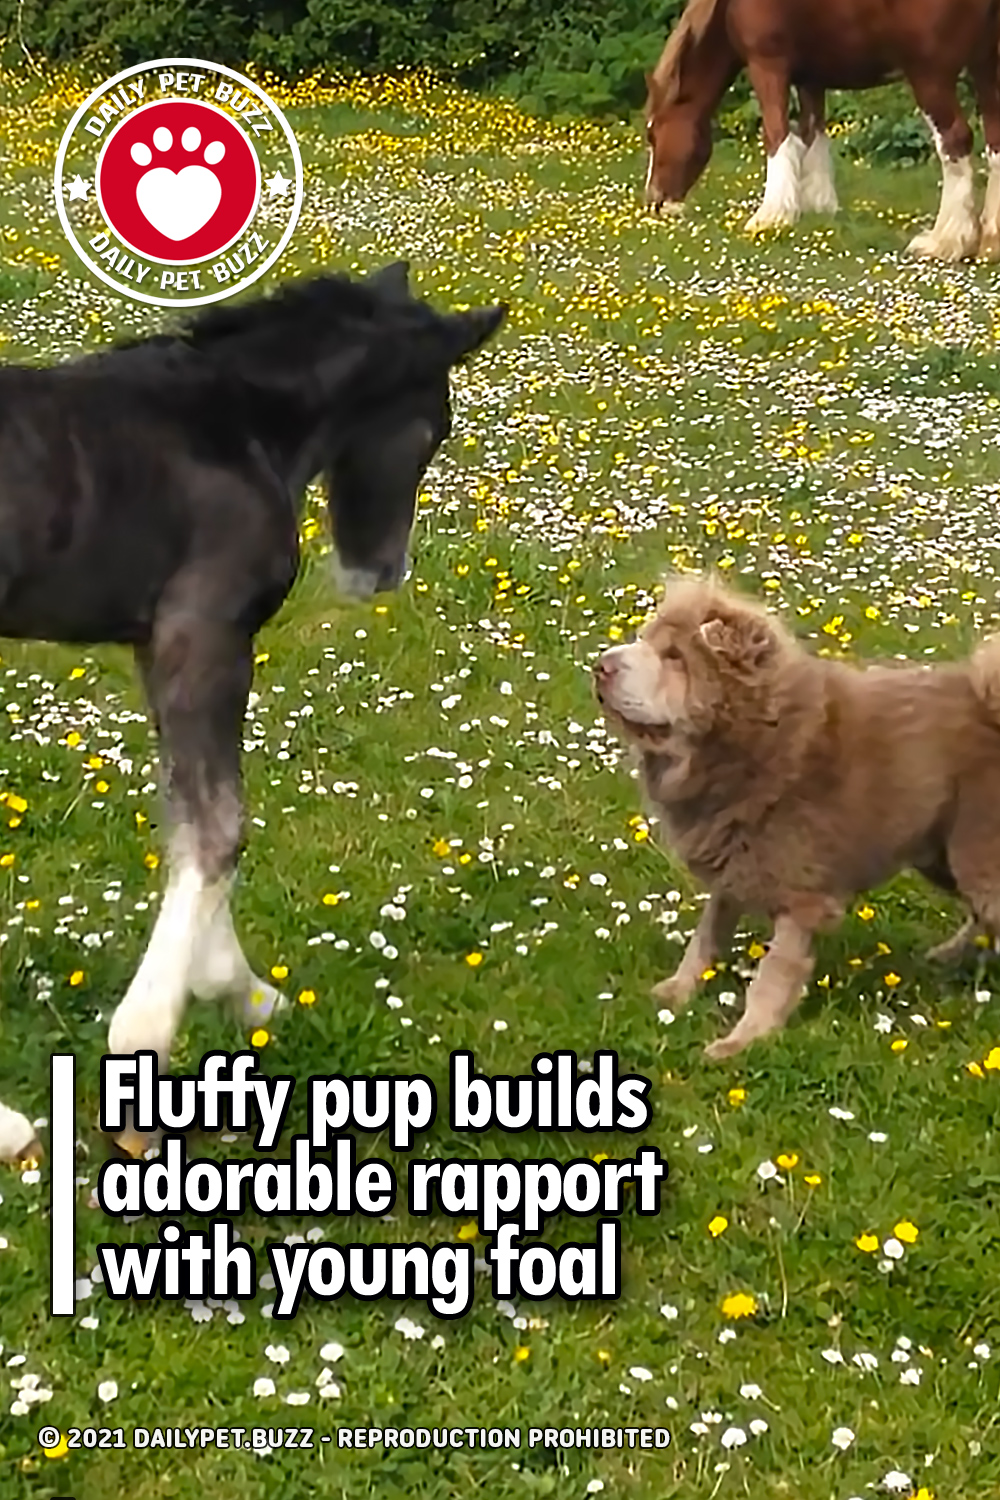 Fluffy pup builds adorable rapport with young foal